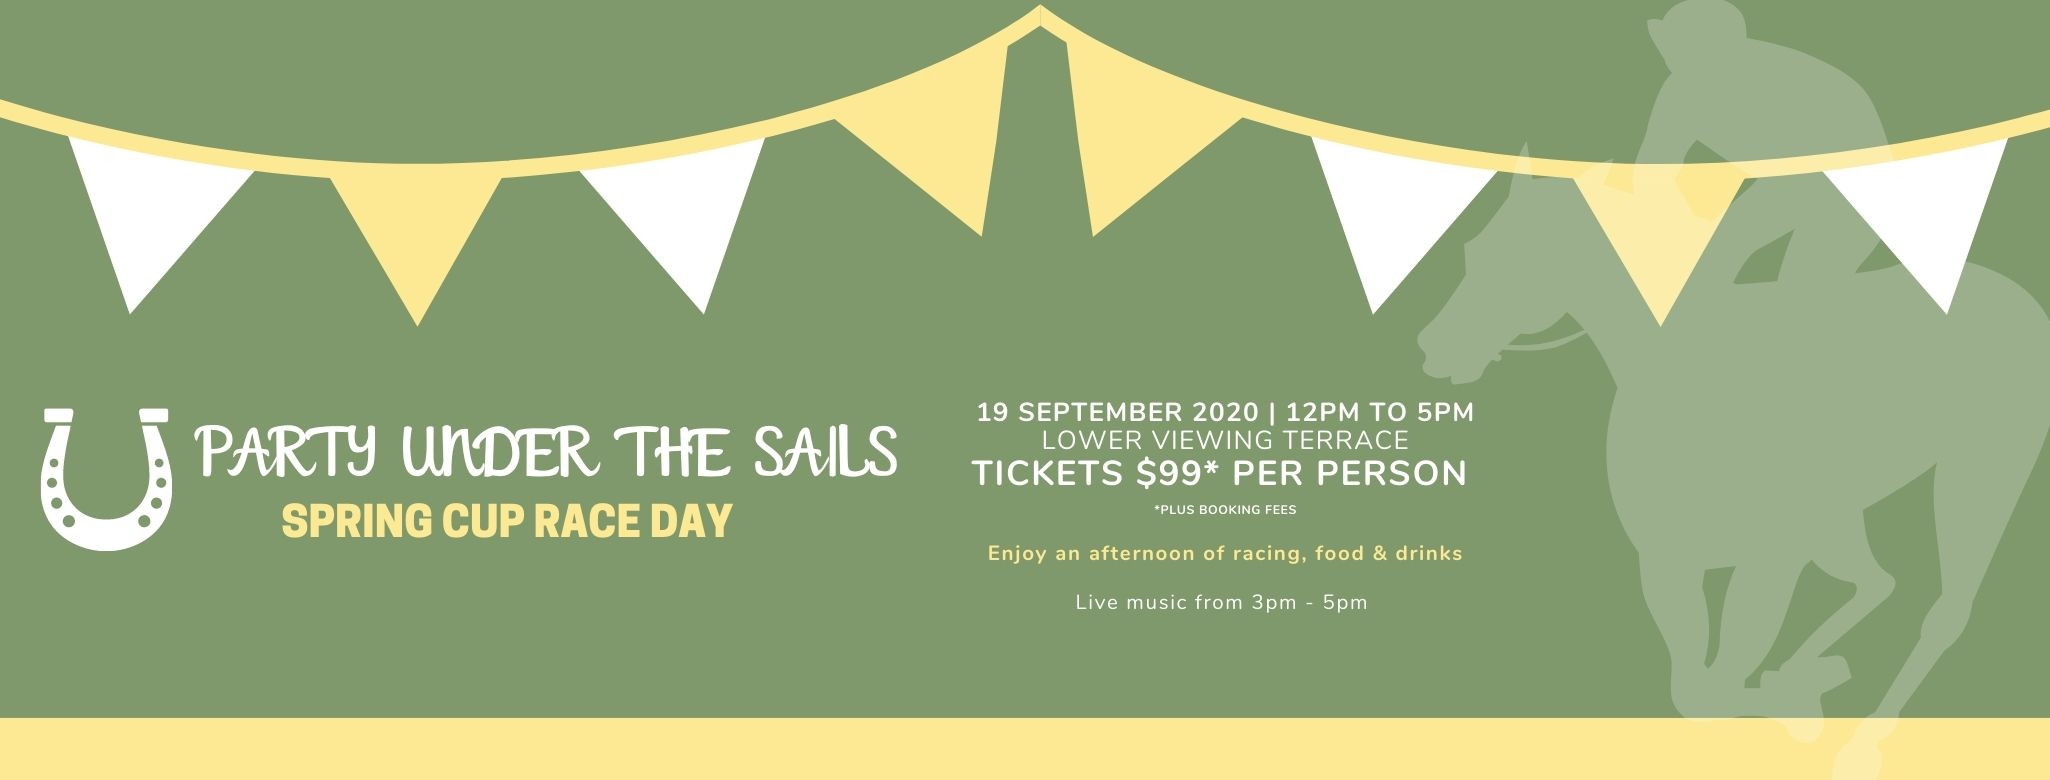 Tickets for Spring Cup Race Day - Party Under the Sails in BUNDAMBA from Ticketbooth